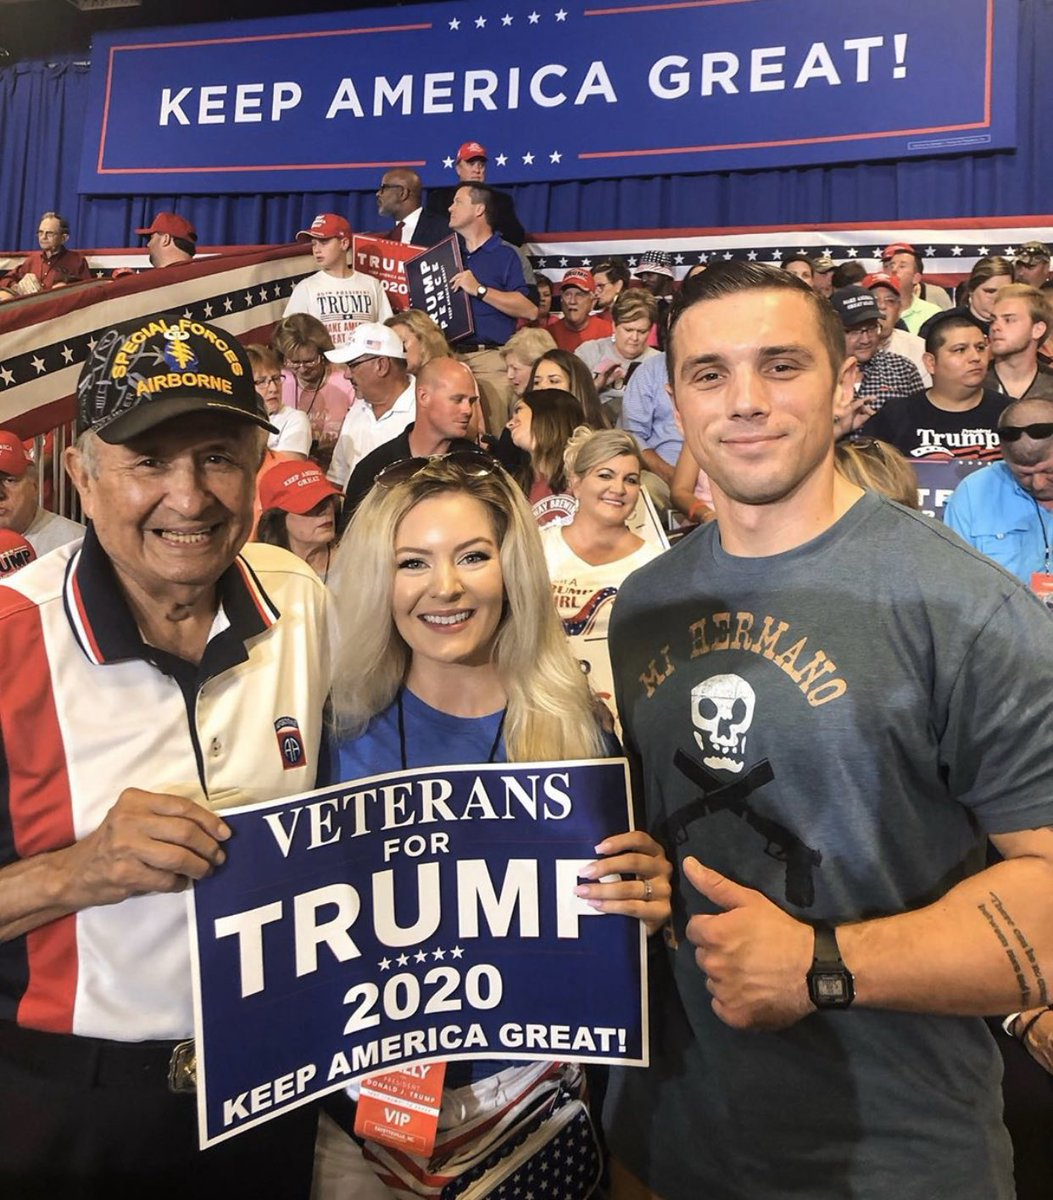 How can anyone who served in any branch of the Military call themselves a Democrat.. Trump is all in for National Security and that is important to me. #veteransfortrump